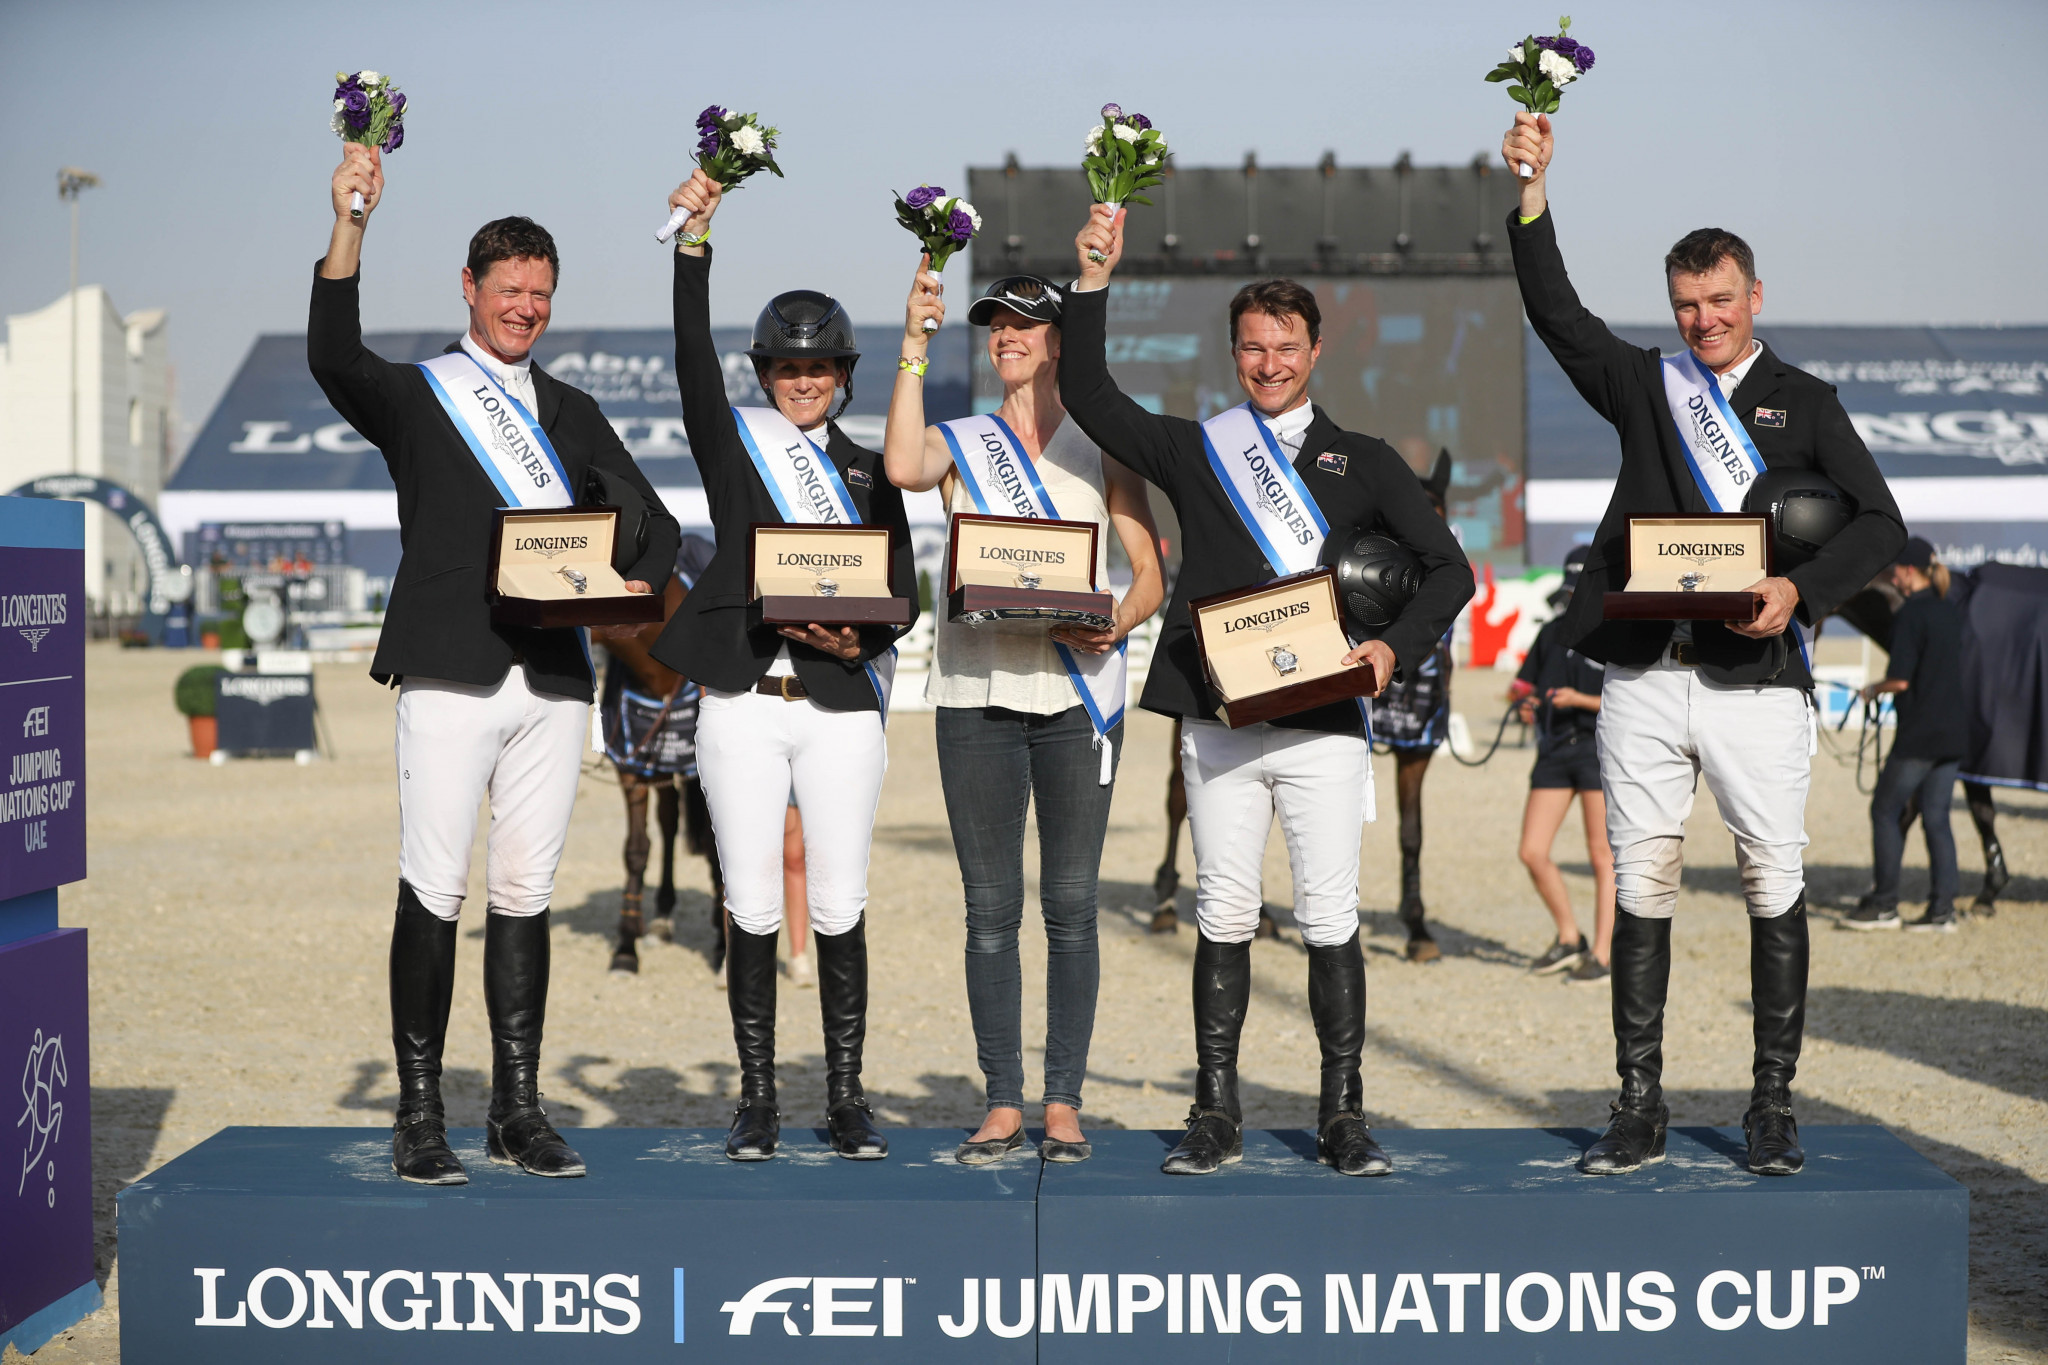 New Zealand come out on top in FEI Jumping Nations Cup in Abu Dhabi